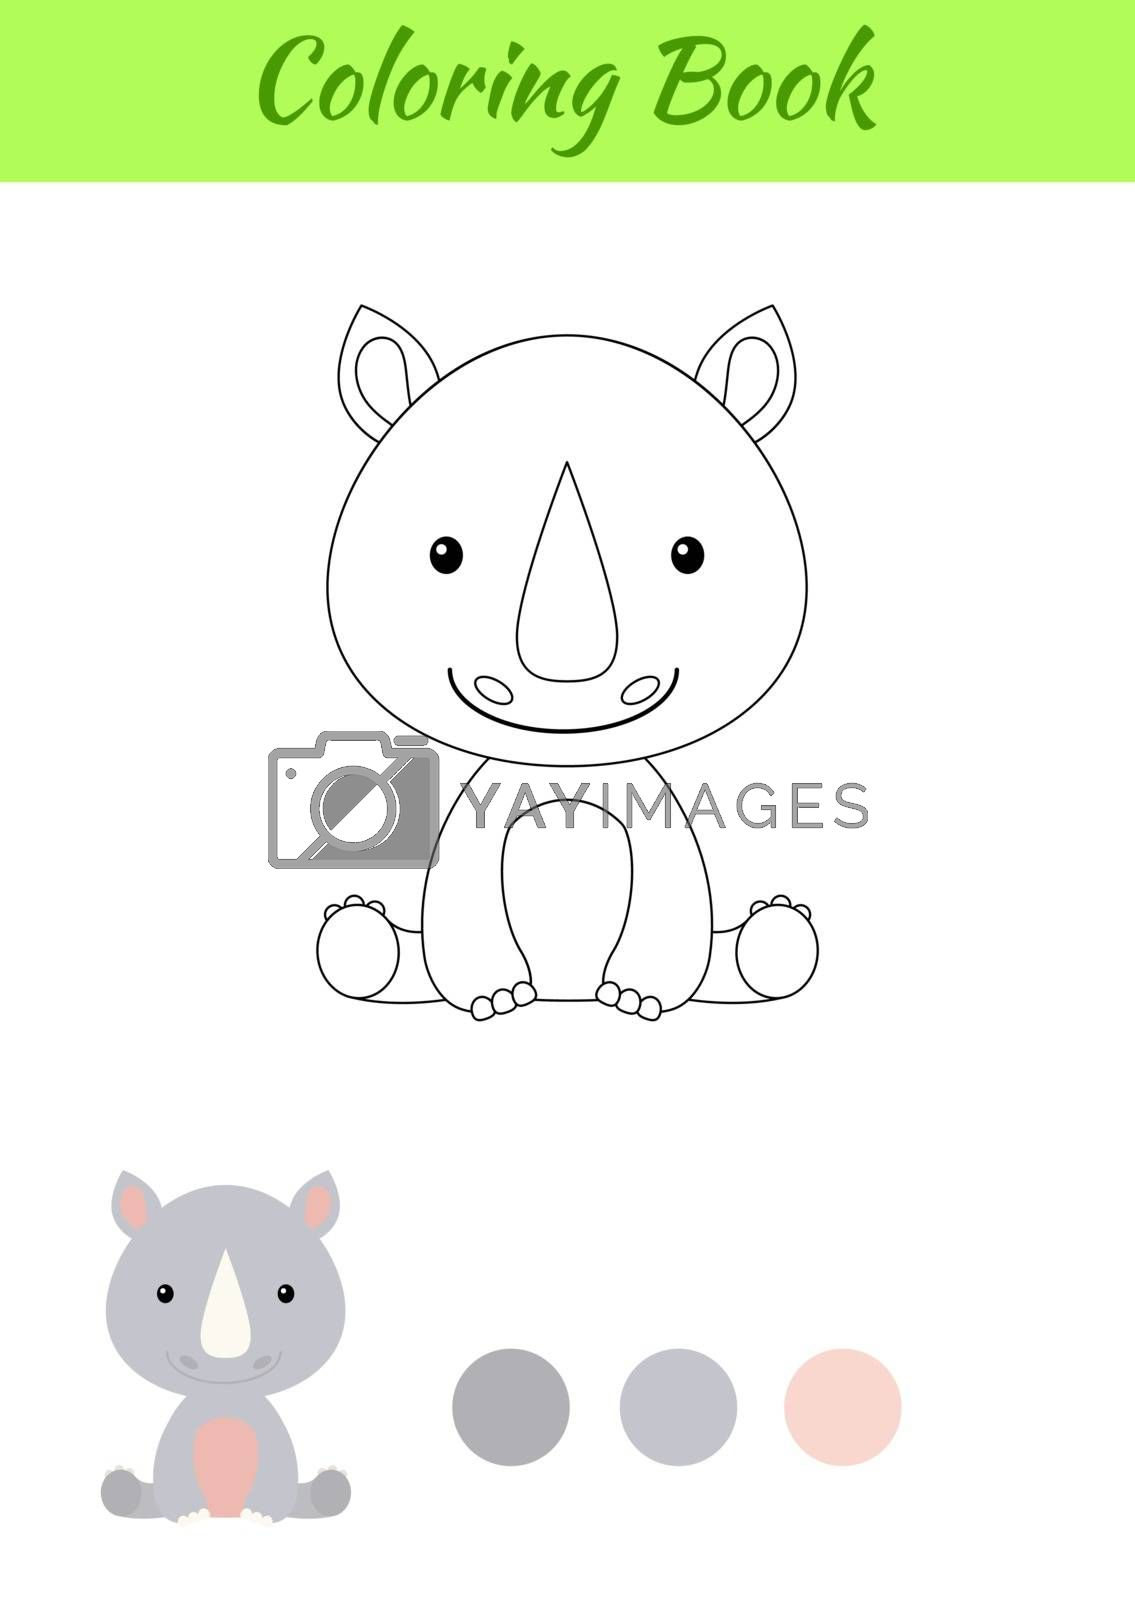 Coloring page little sitting baby rhino. Coloring book for kids. Educational activity for preschool years kids and toddlers with cute animal. Flat cartoon colorful vector stock illustration.